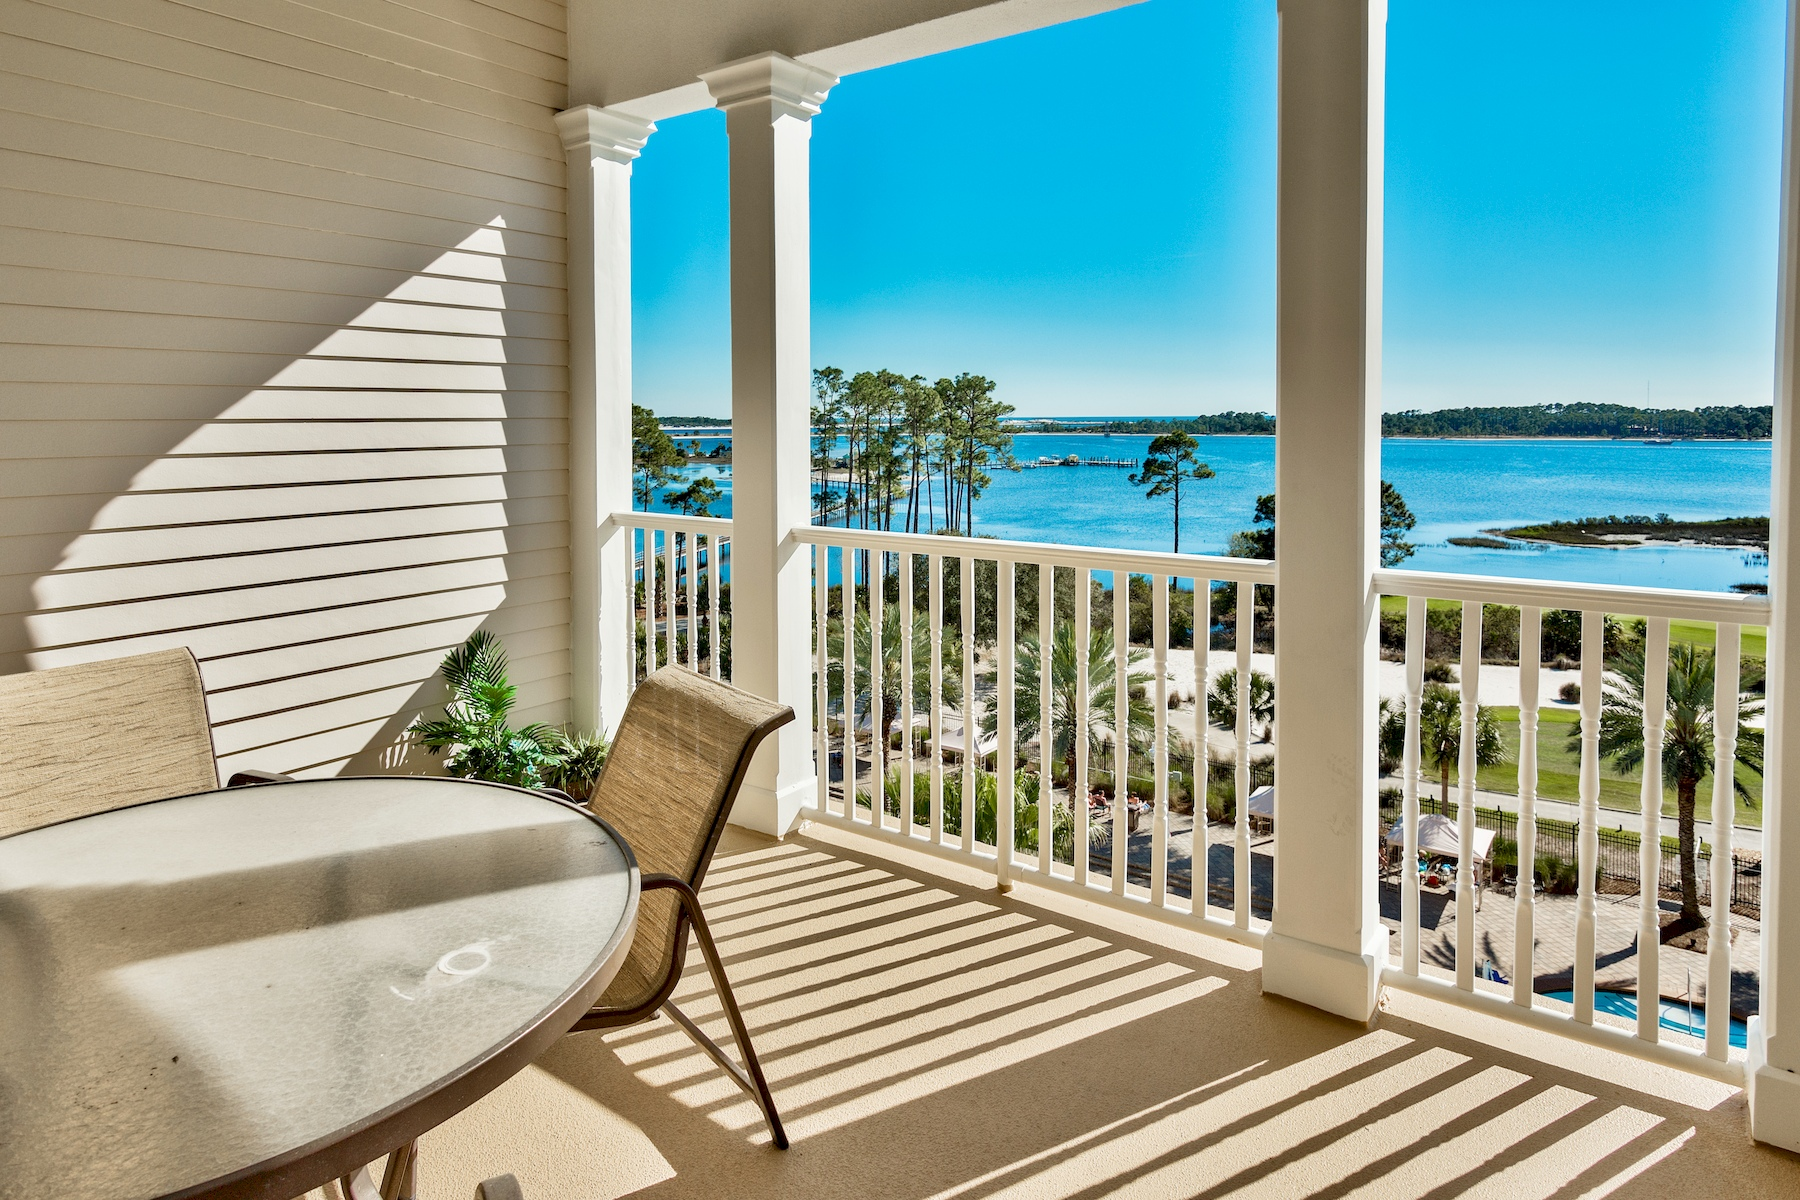 condominiums for Active at Water View Condo at Bay Point Resort 4100 Marriott Drive 605 Panama City Beach, Florida 32408 United States